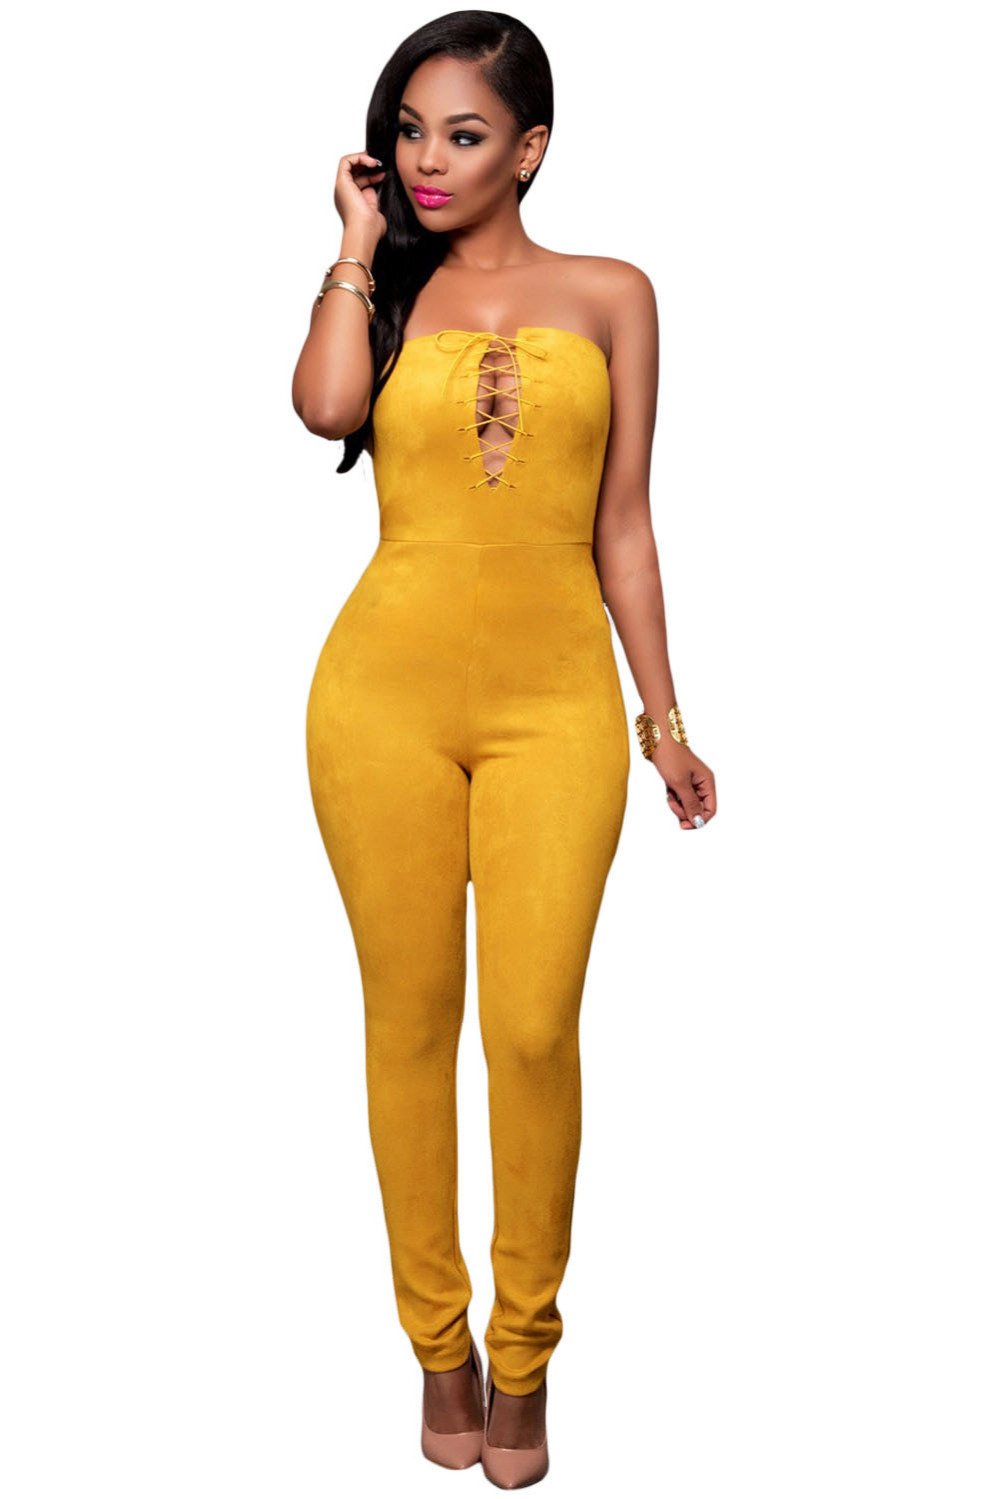 371308bc708c US $25.01 |FIYOTE 2016 playsuits Macacao Feminino Khaki Deep V Lace up Faux  Suede Strapless Jumpsuit LC64157 Monos Largos De Mujer On Sales-in ...